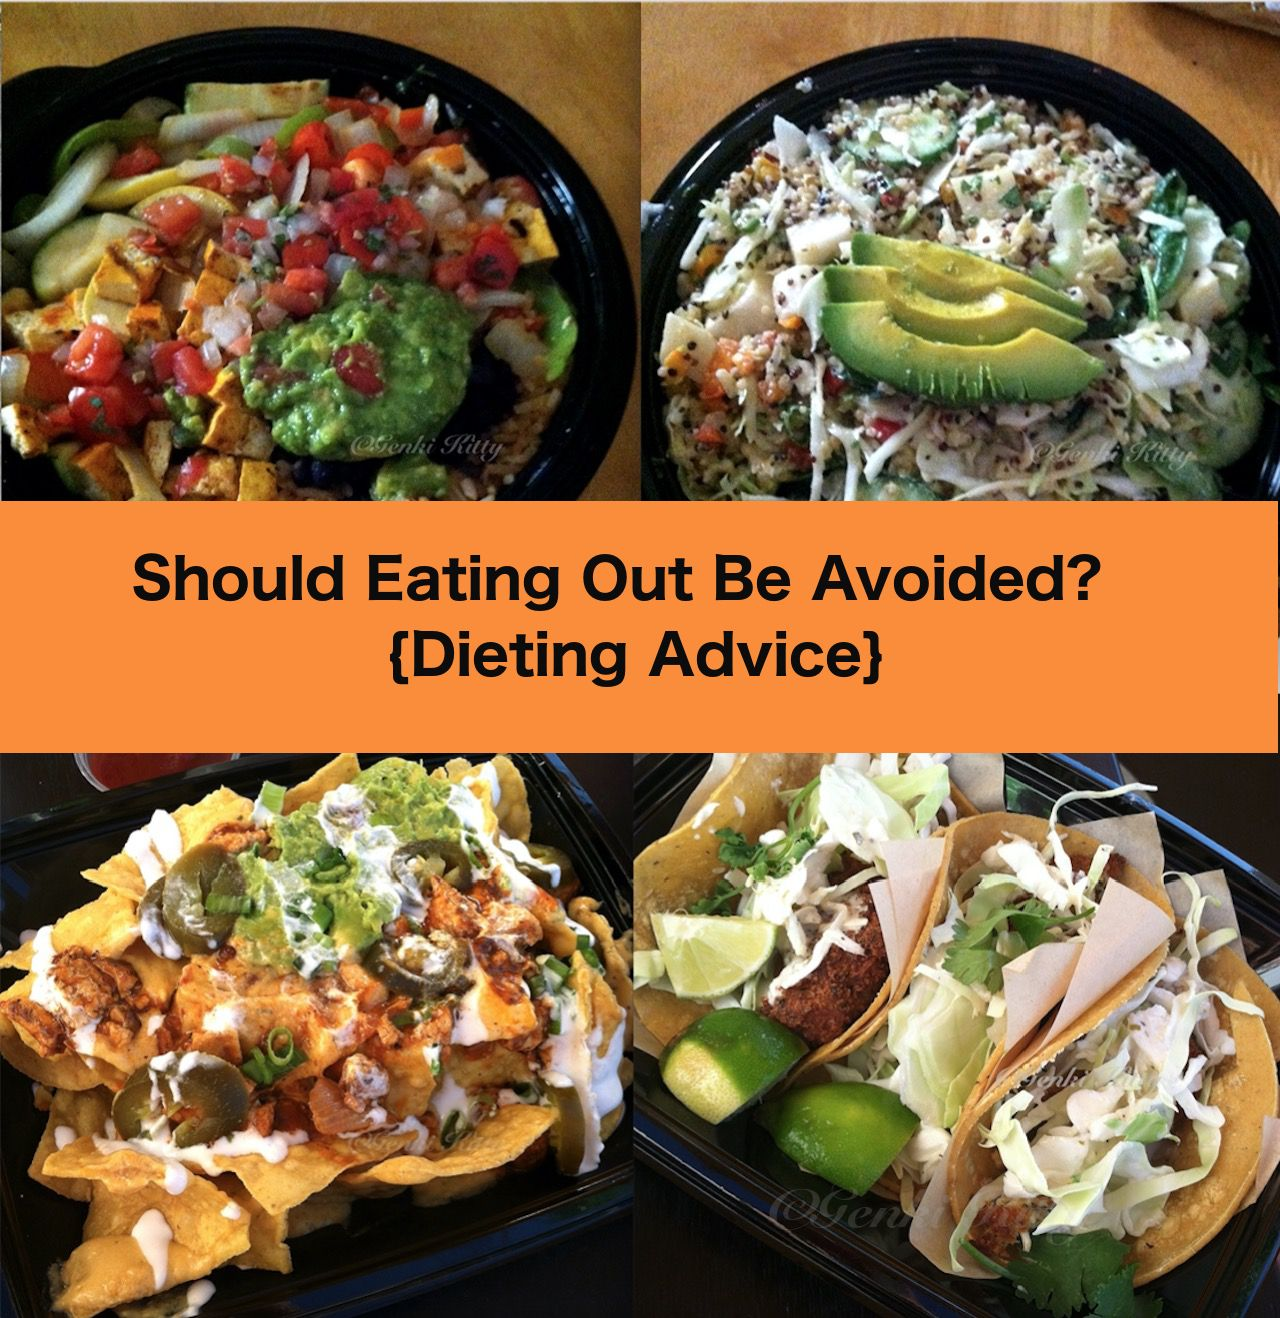 Should eating out be avoided?  Weight Loss advice